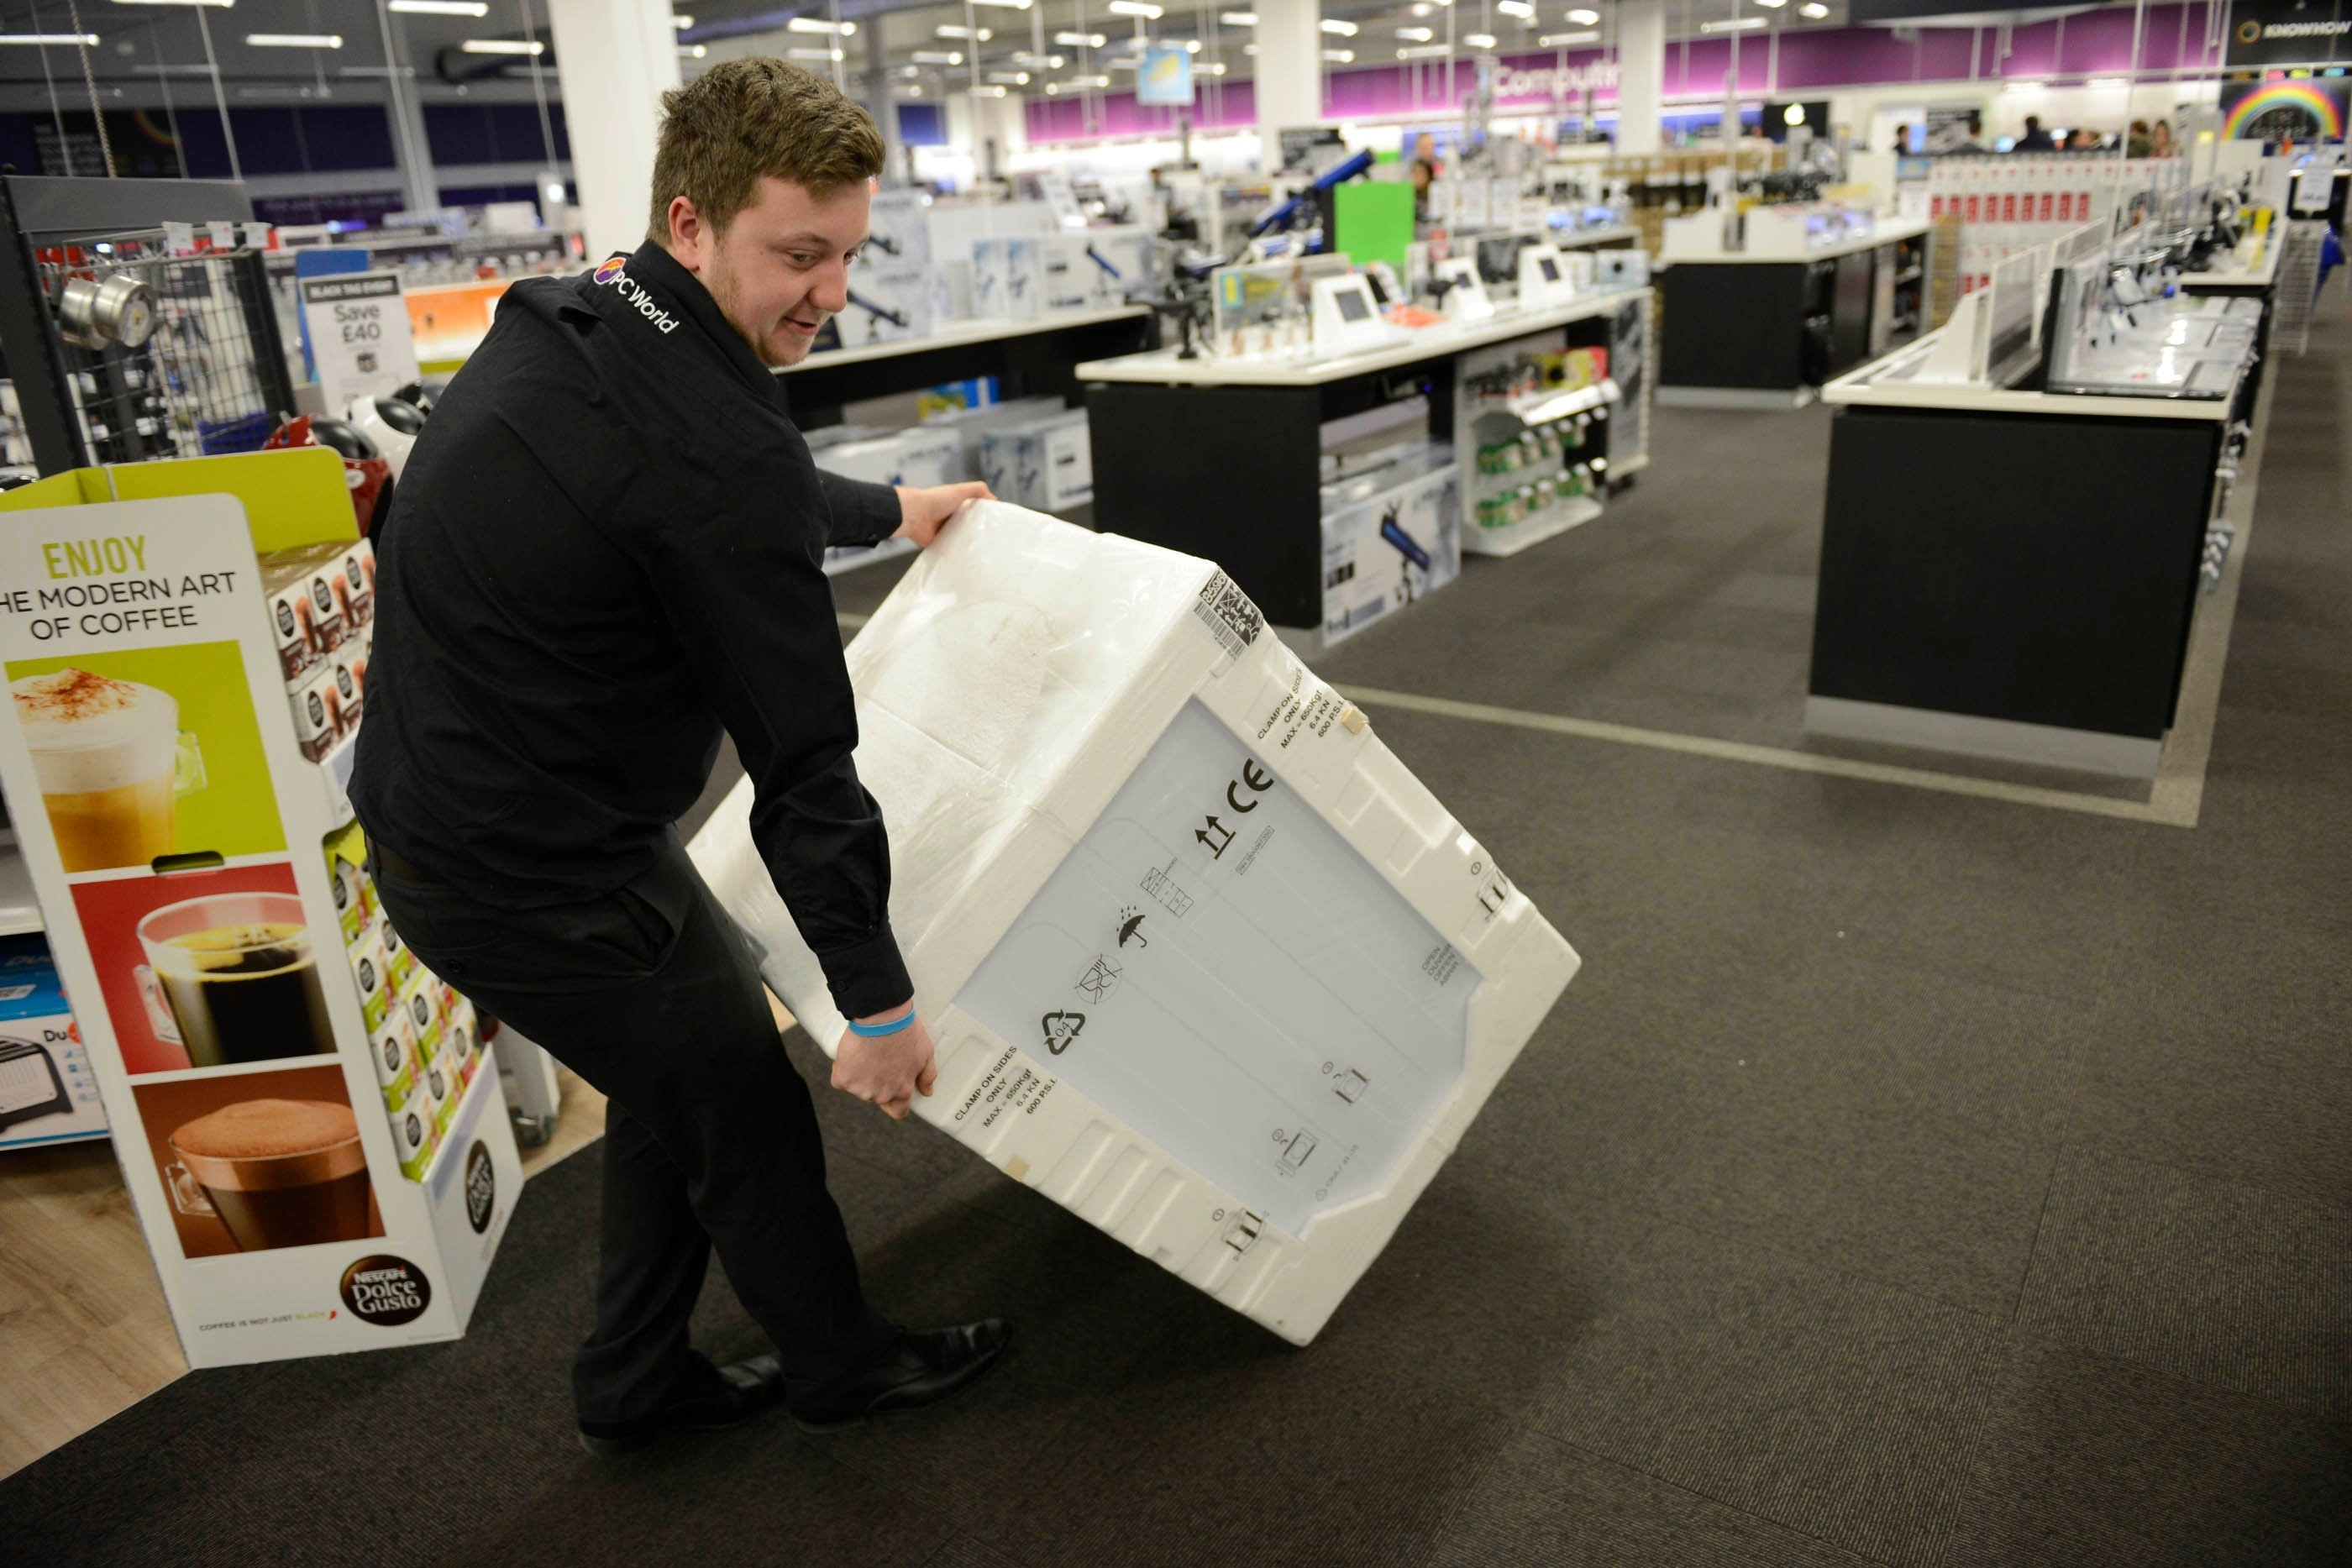 Staff member moves a dryer at Currys PC World, intu Braehead, Glasgow, for Black Friday sales, November 27, 2015. Large crowds did not materialise despite the bargains on offer with very few shoppers being in the store shortly after opening at 6am.